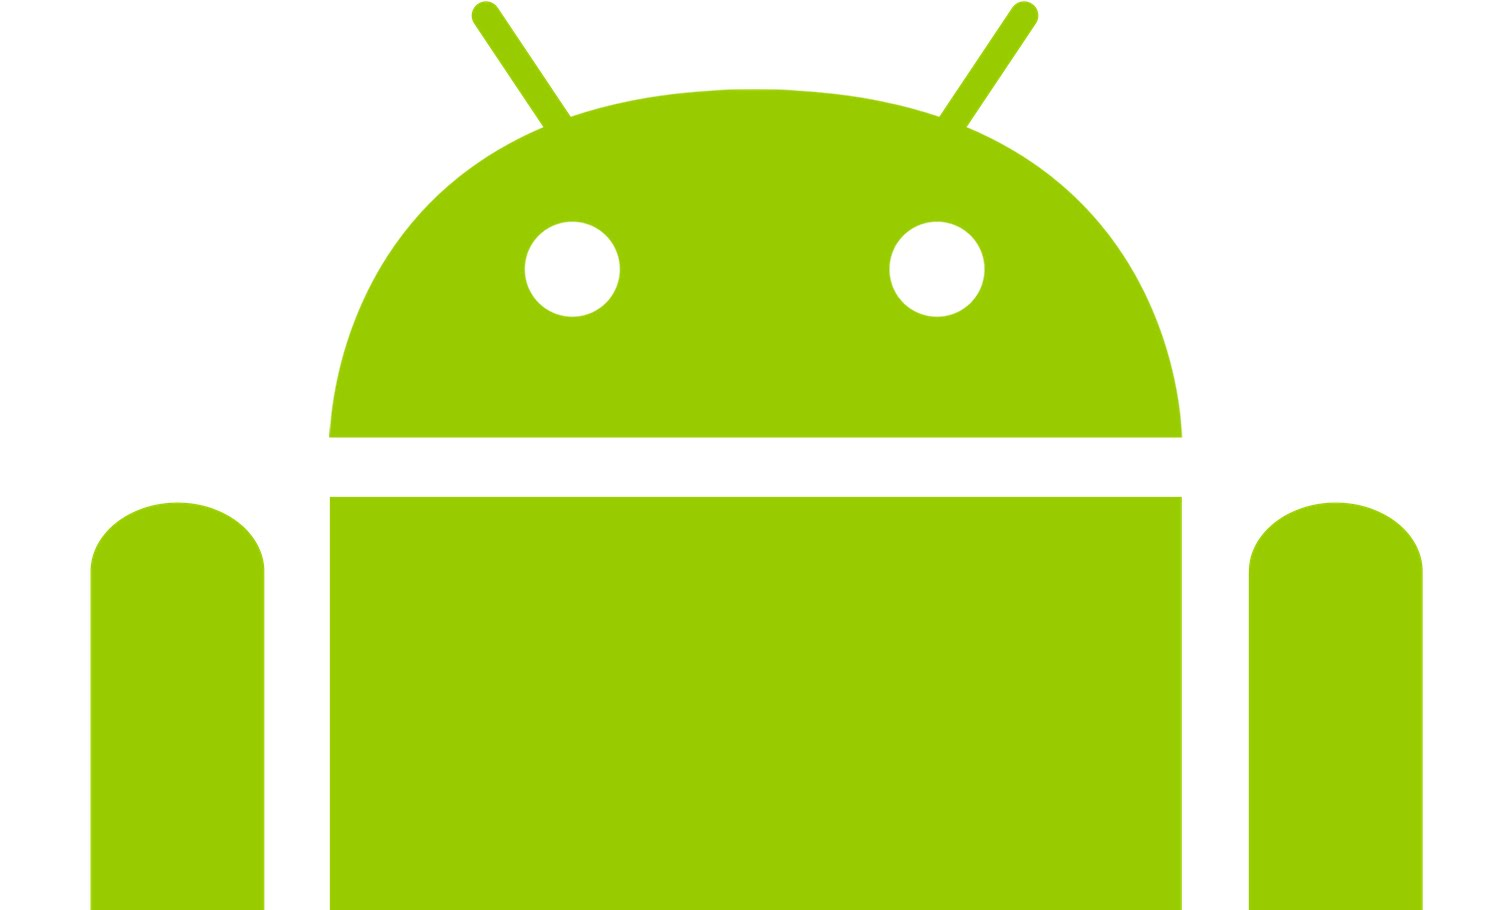 Android svg #13, Download drawings